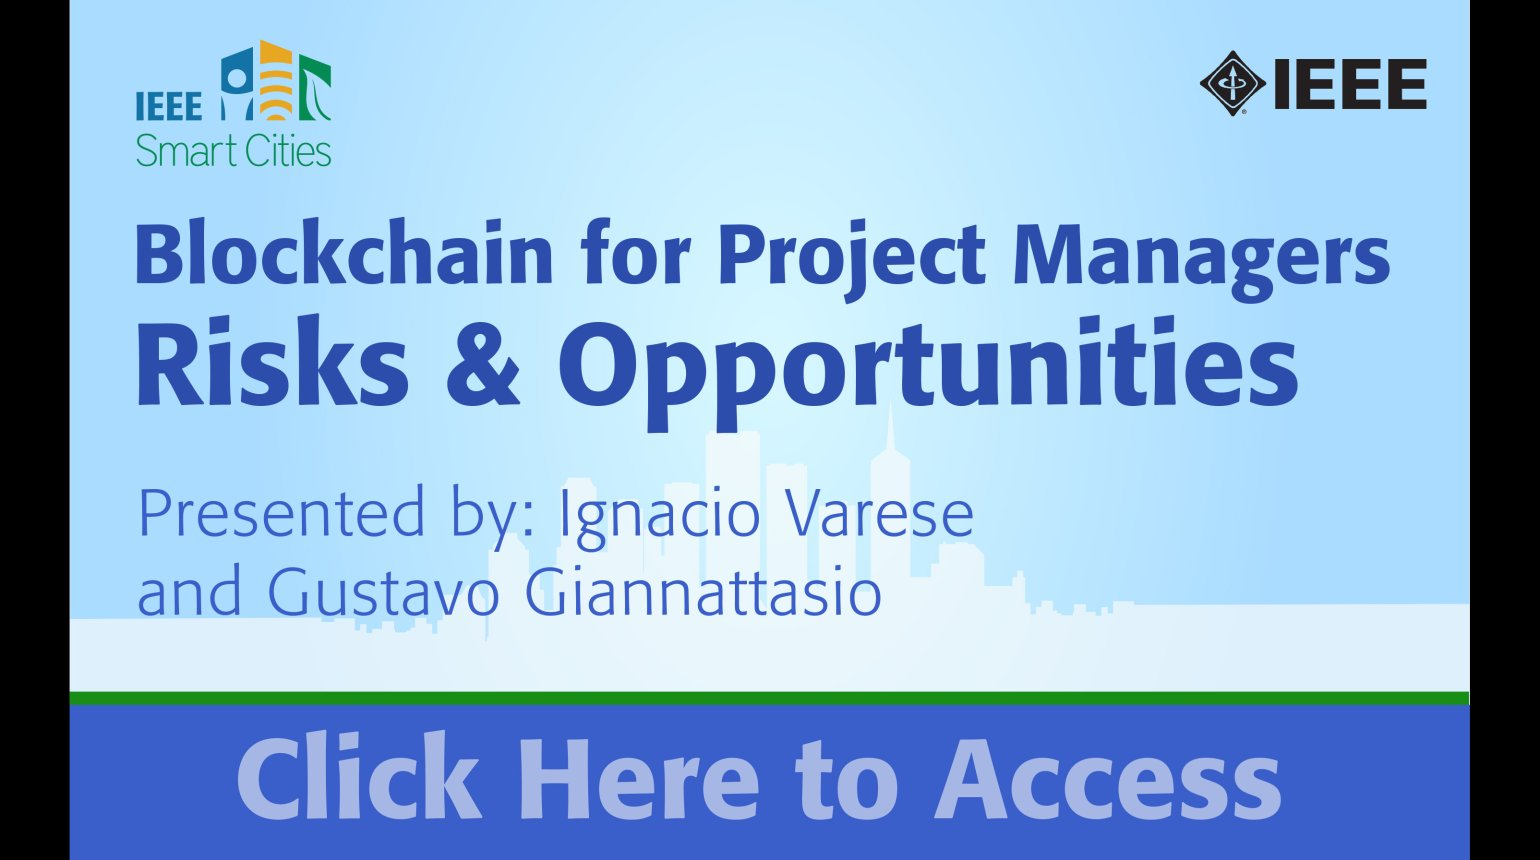 IEEE Smart Cities Webinar - Blockchain for Project Managers for Smart Cities